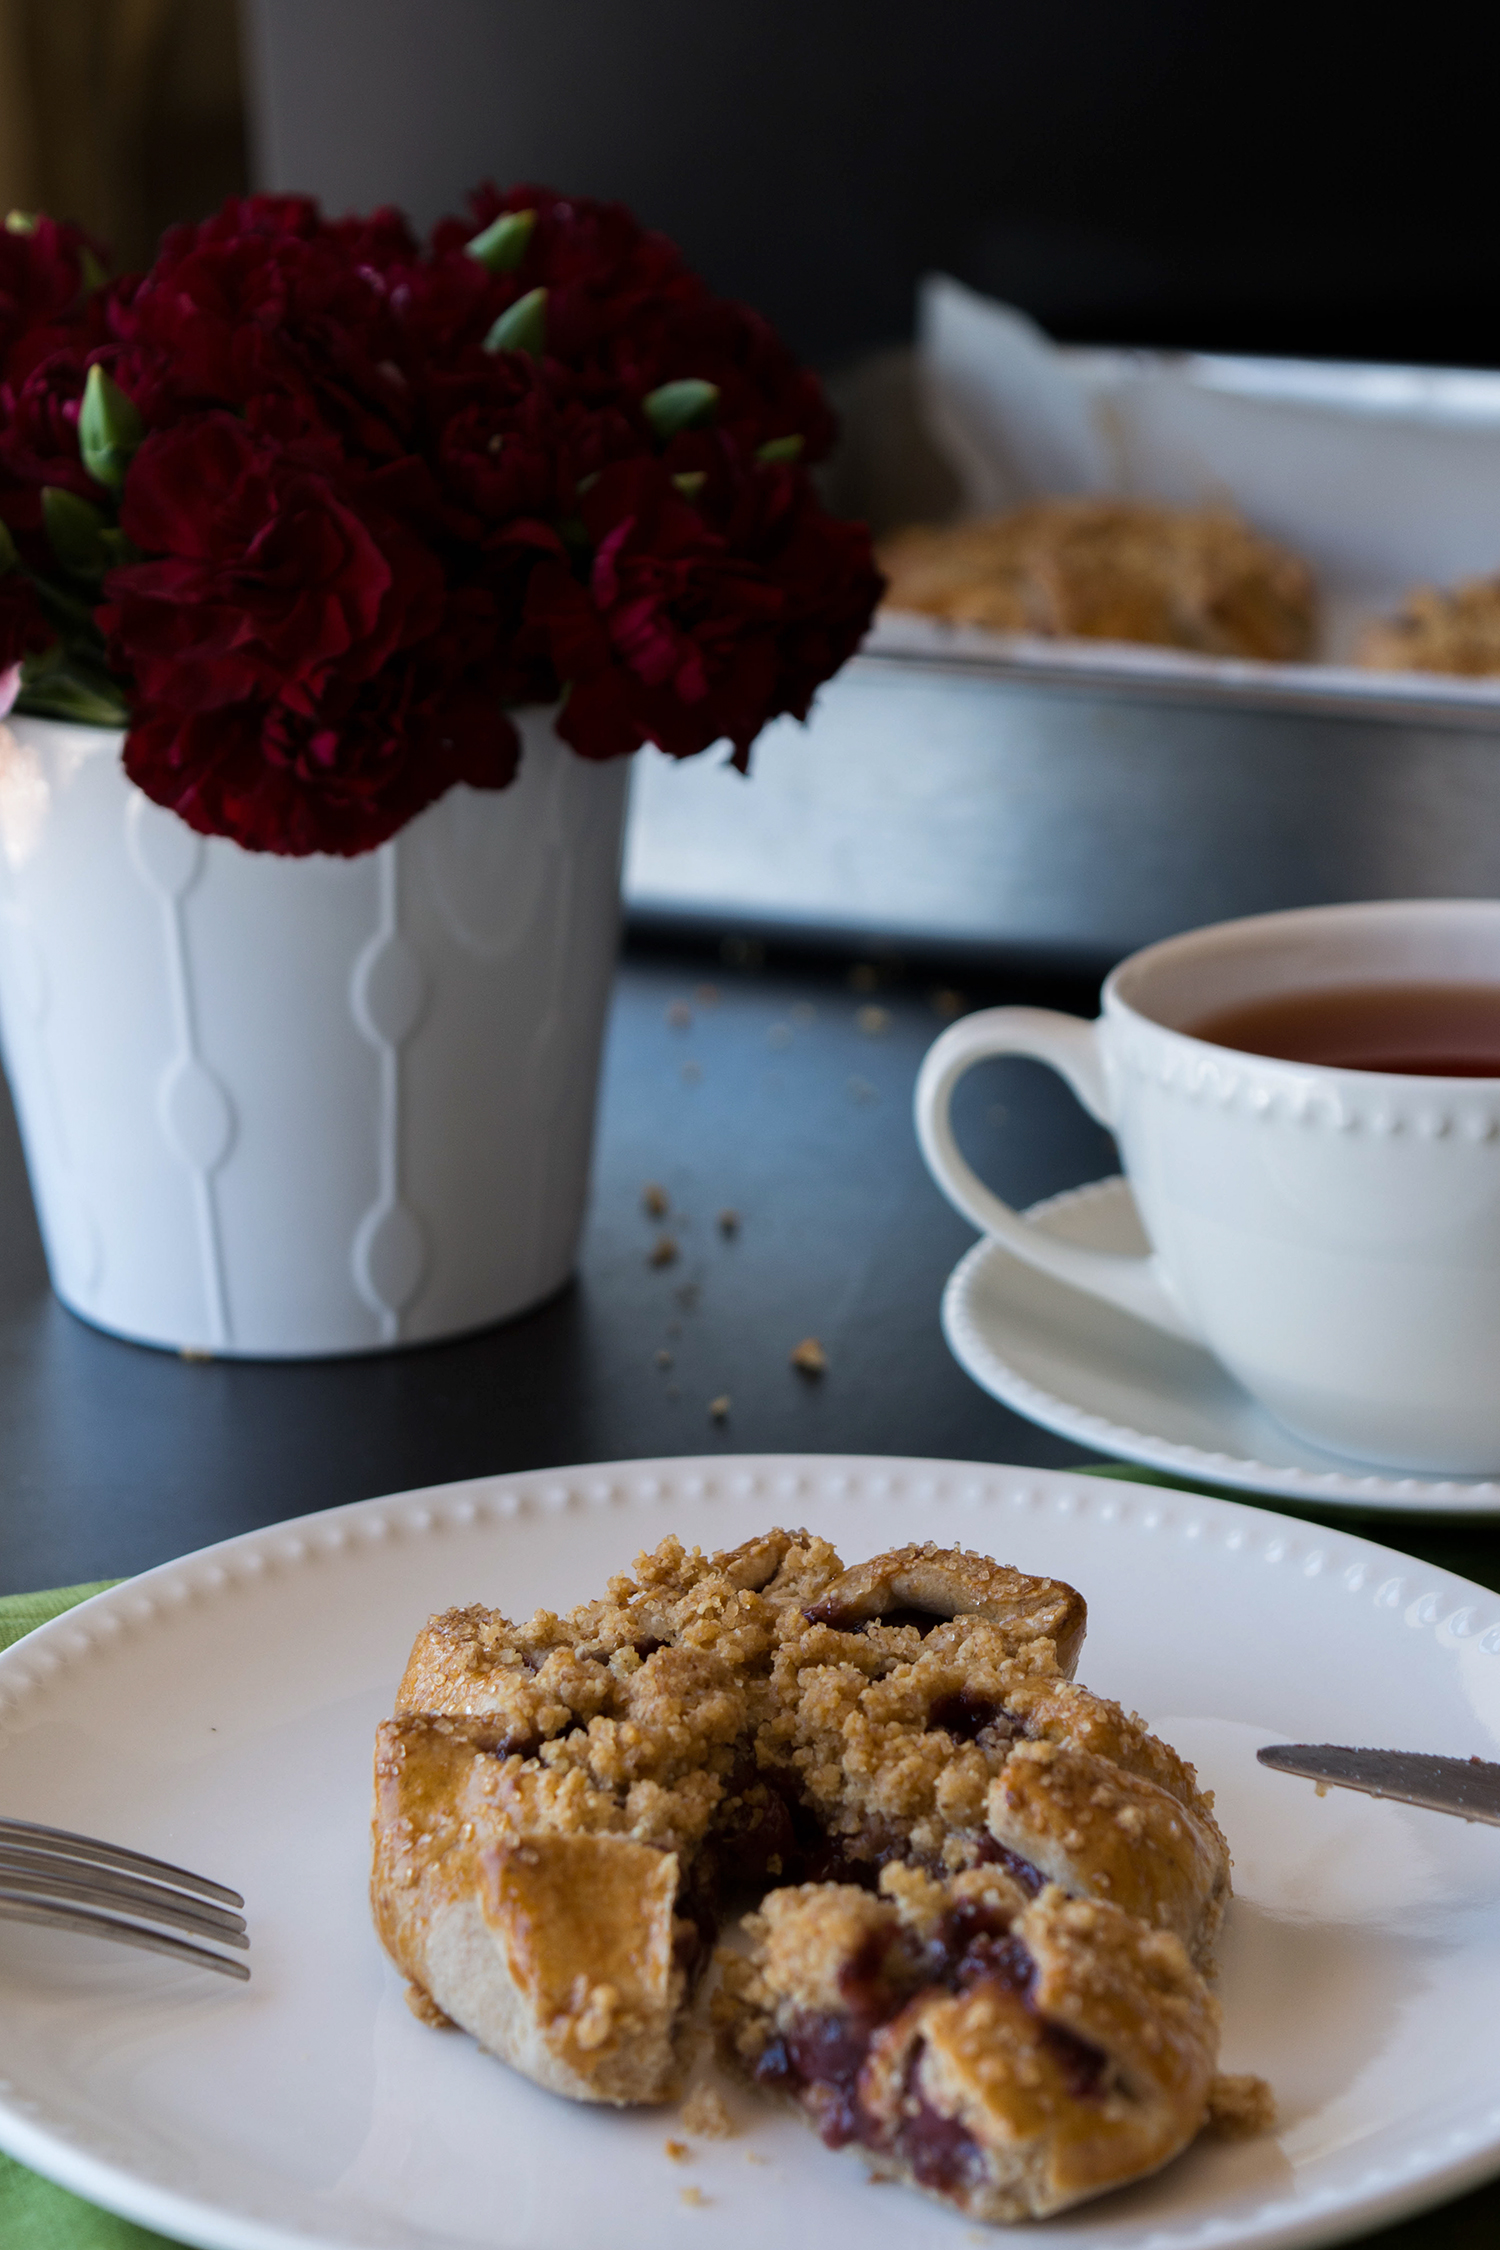 Cherry Galettes with Walnut Streusel